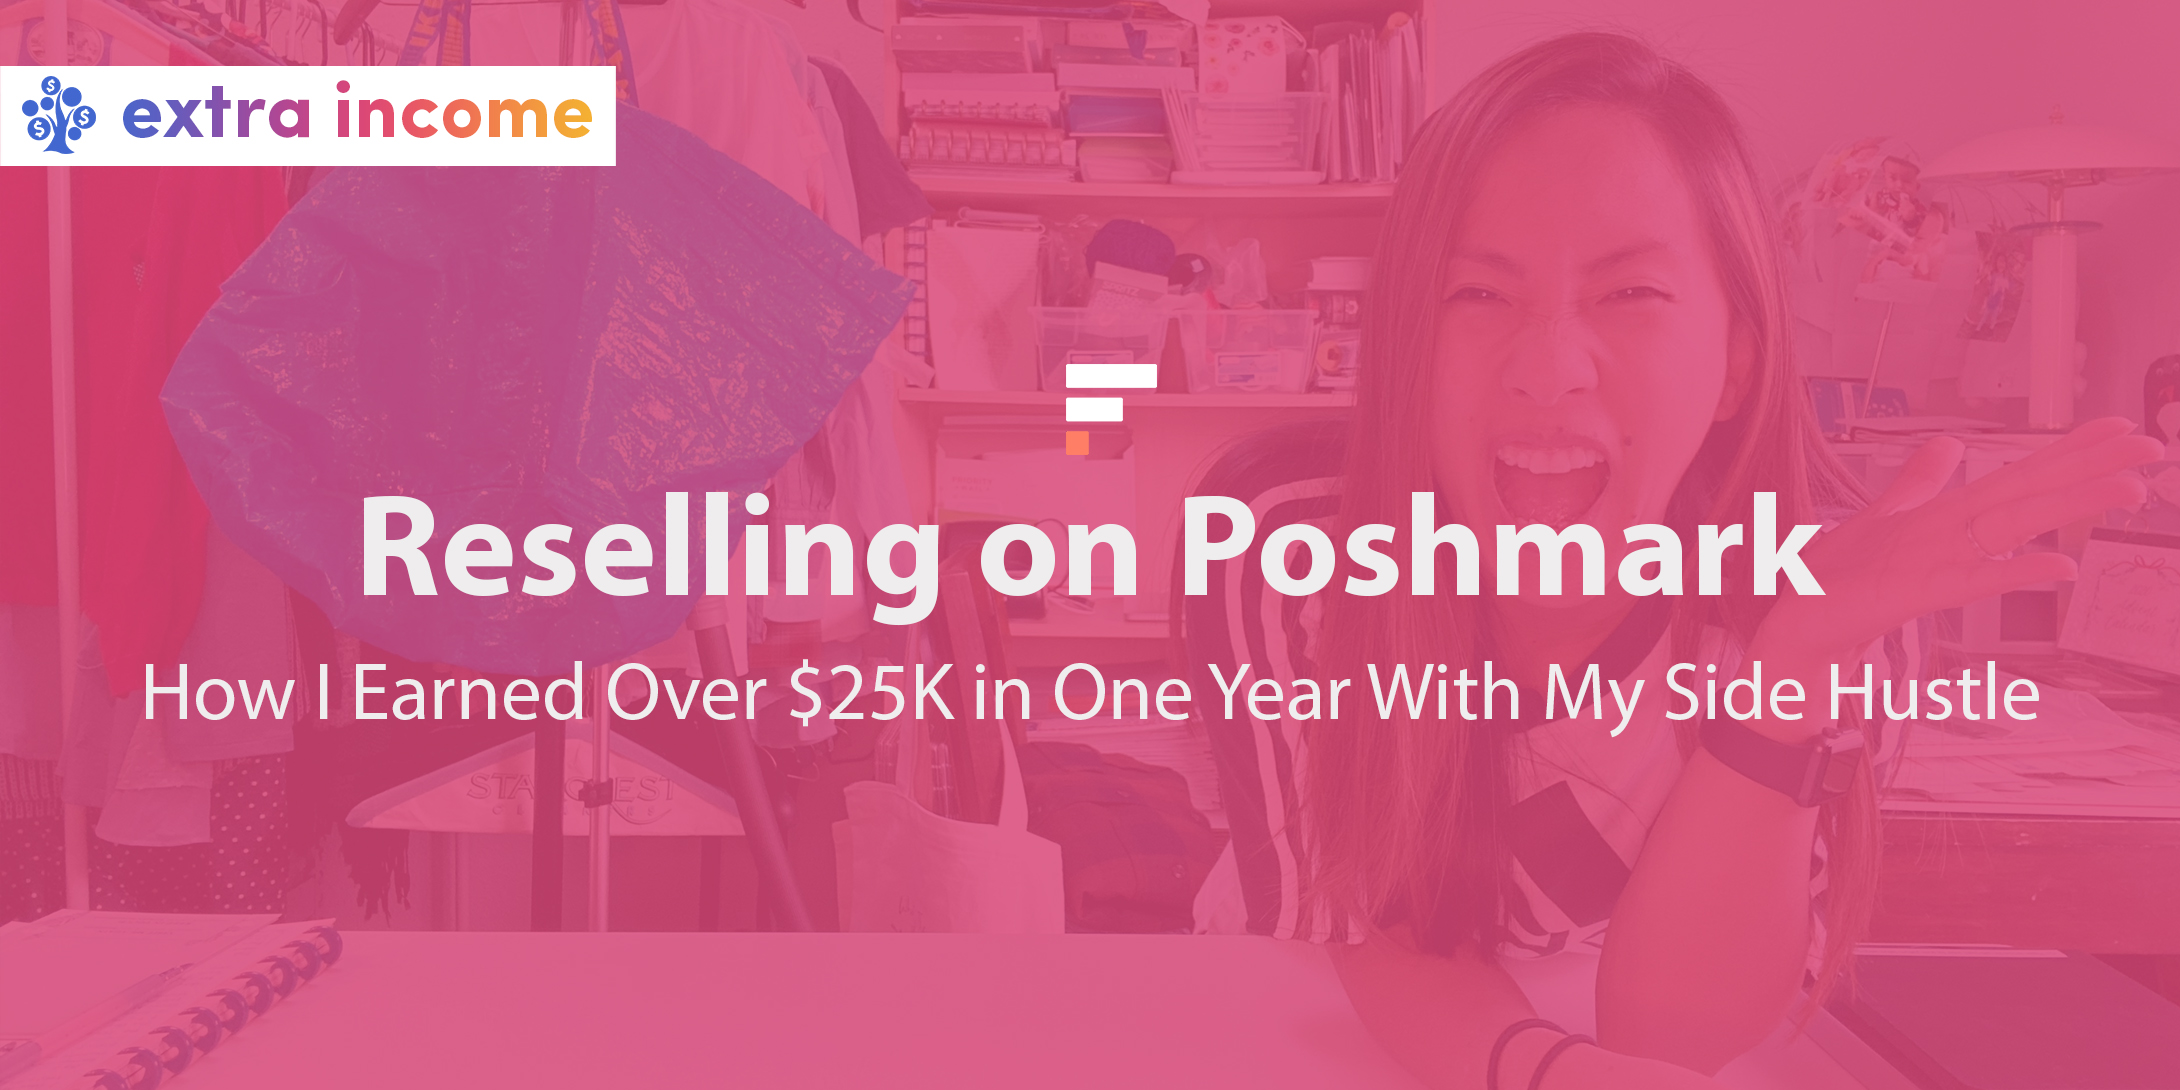 How to sell on Poshmark: How I Earned Over $25K in One Year With My Side Hustle